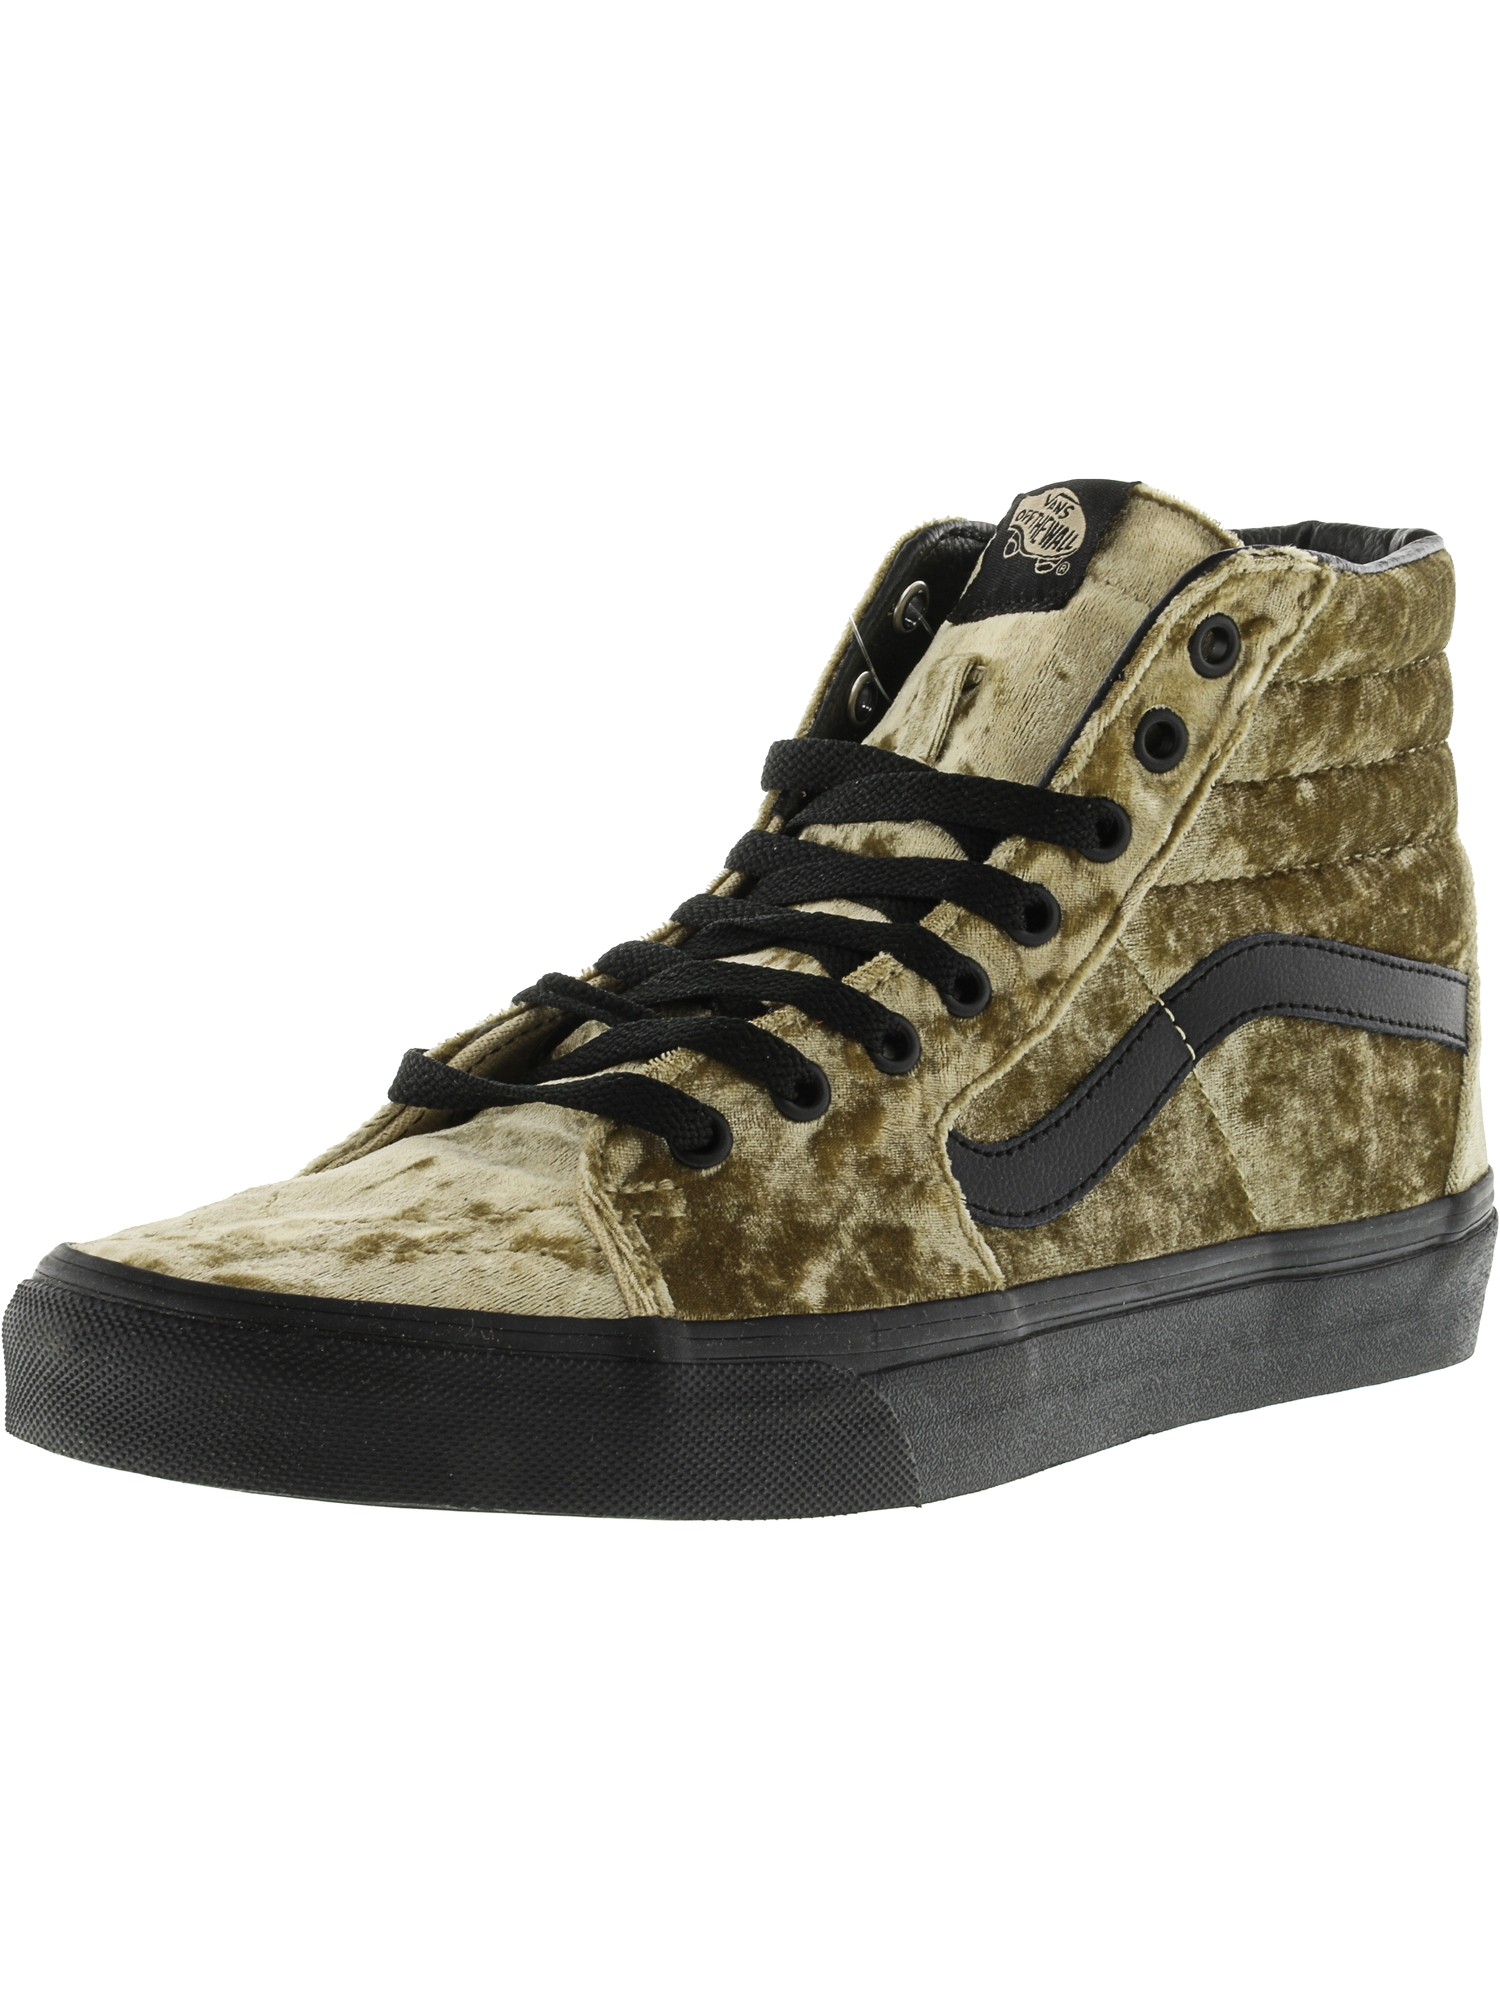 Vans Sk8-Hi Velvet Tan / Black Ankle-High Faux Fur Fashion Sneaker - 10M 8.5M